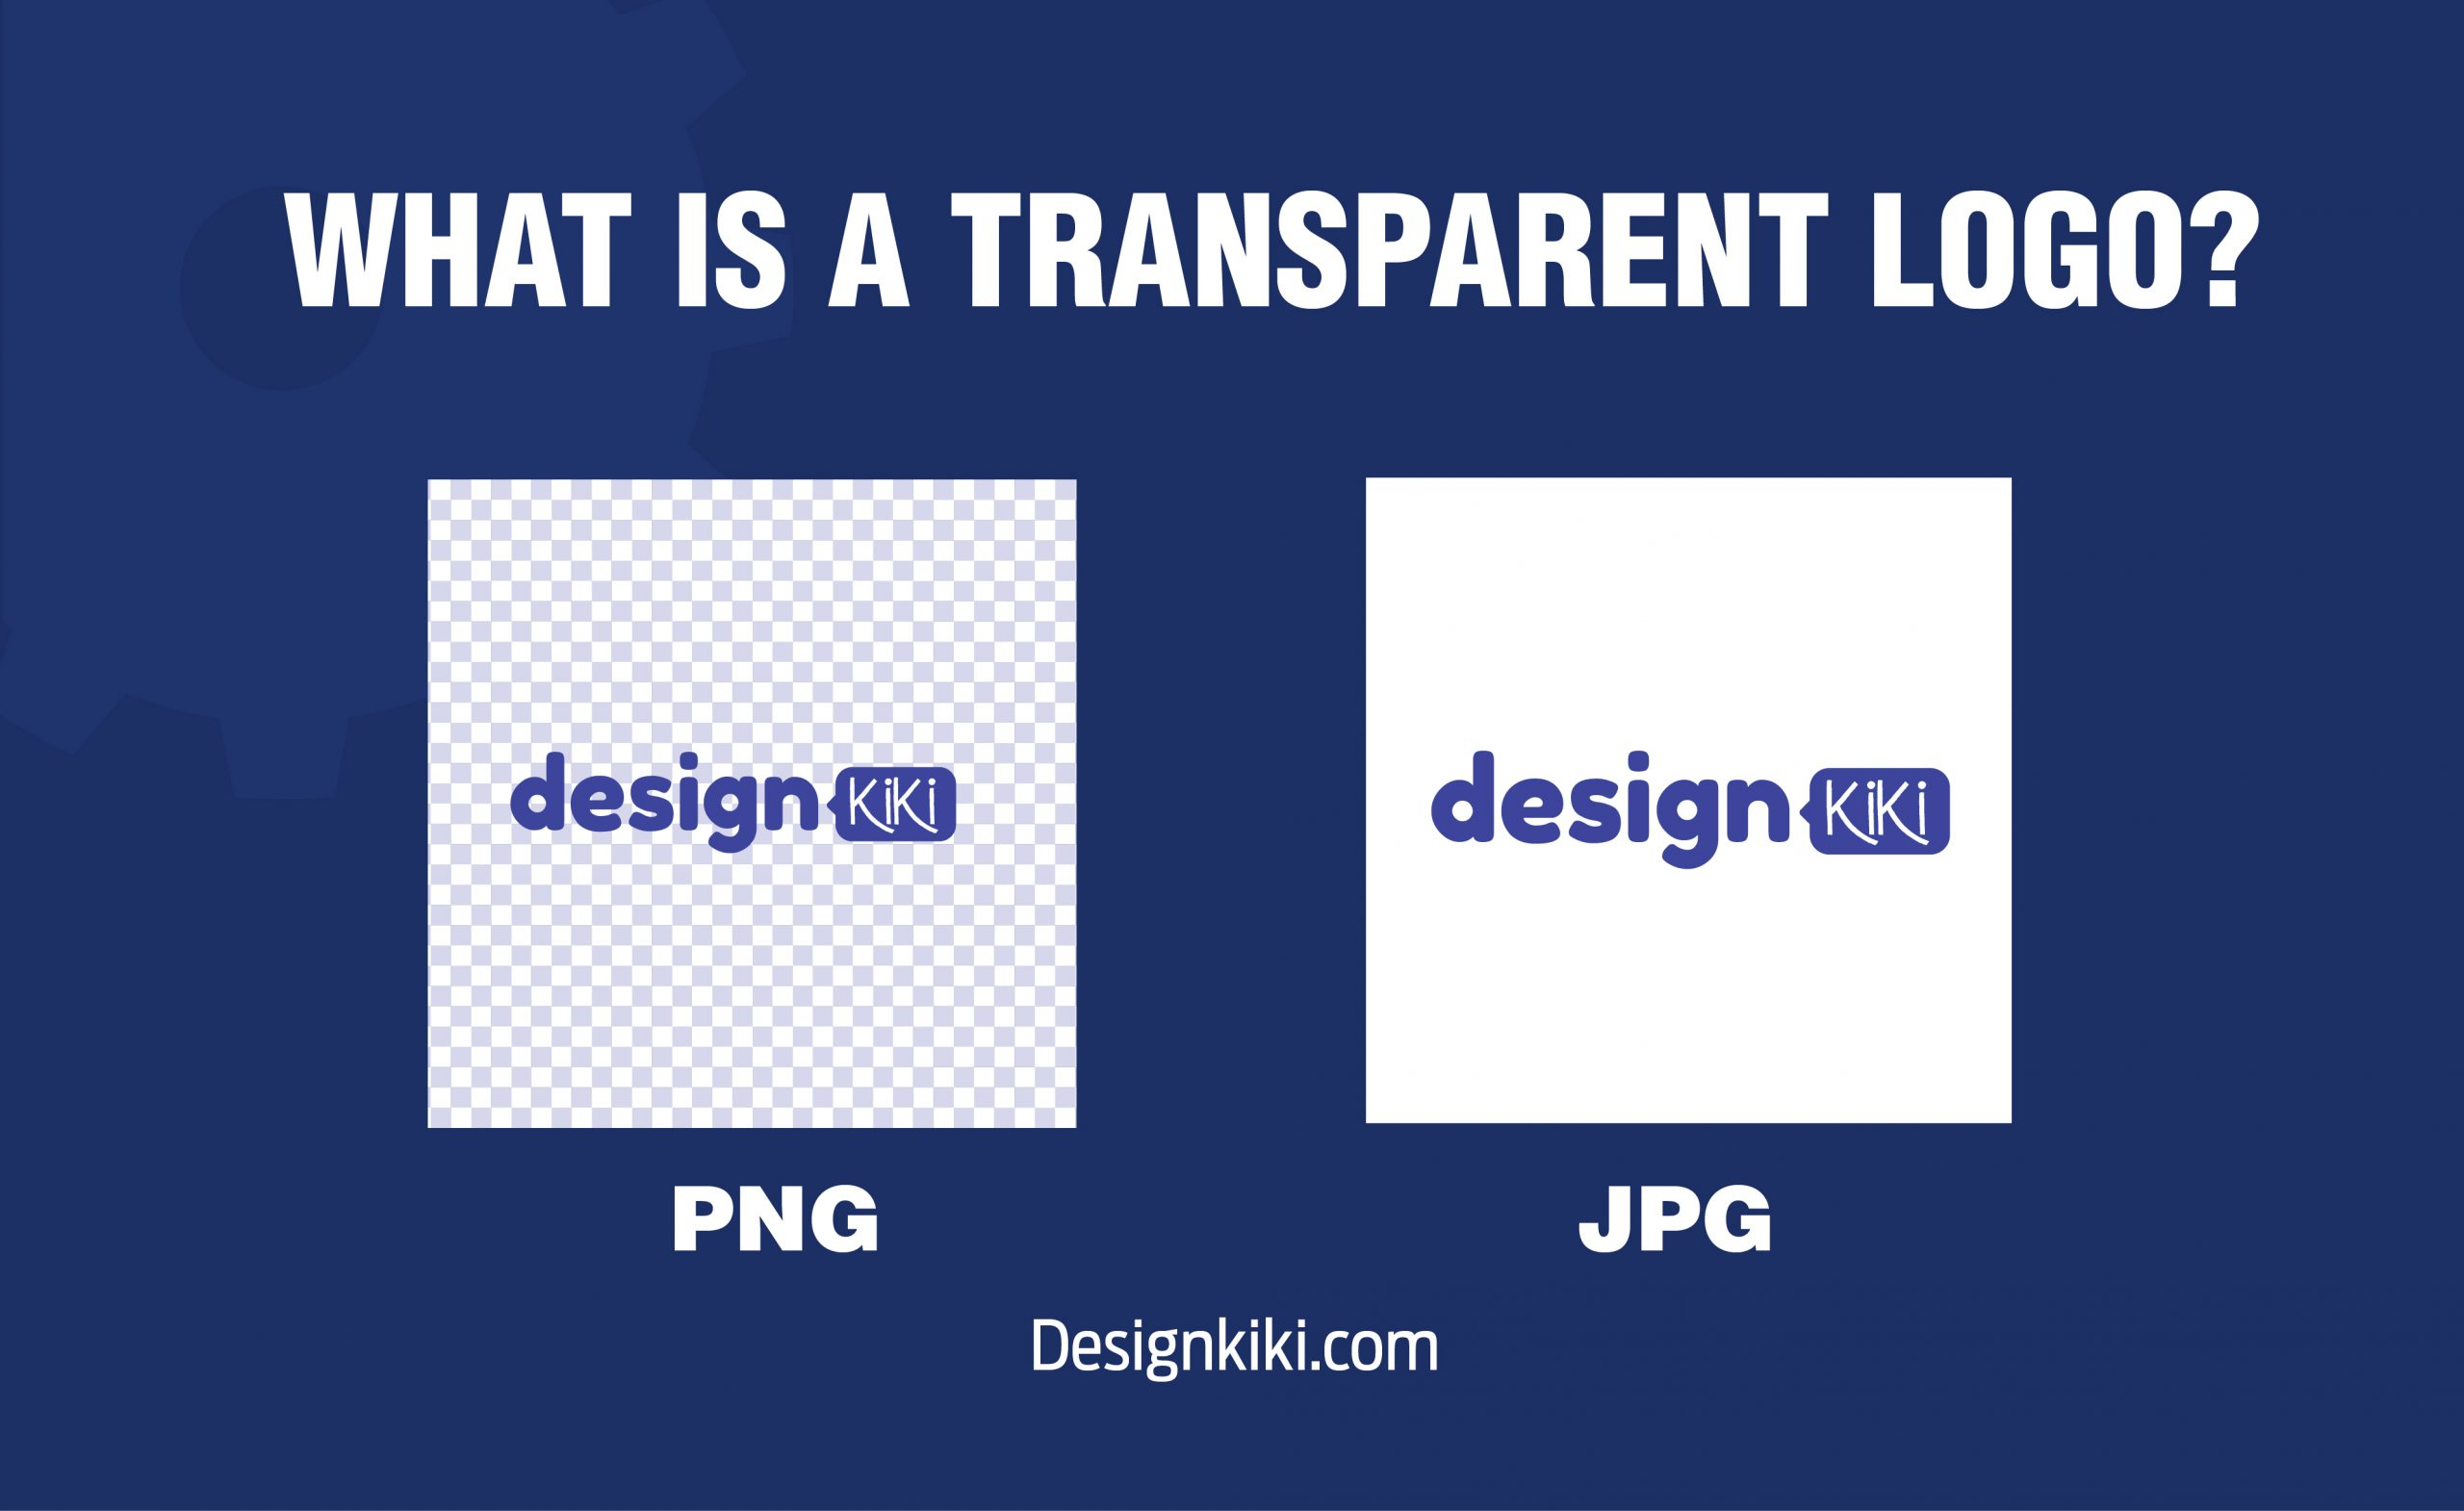 What is a transparent logo?